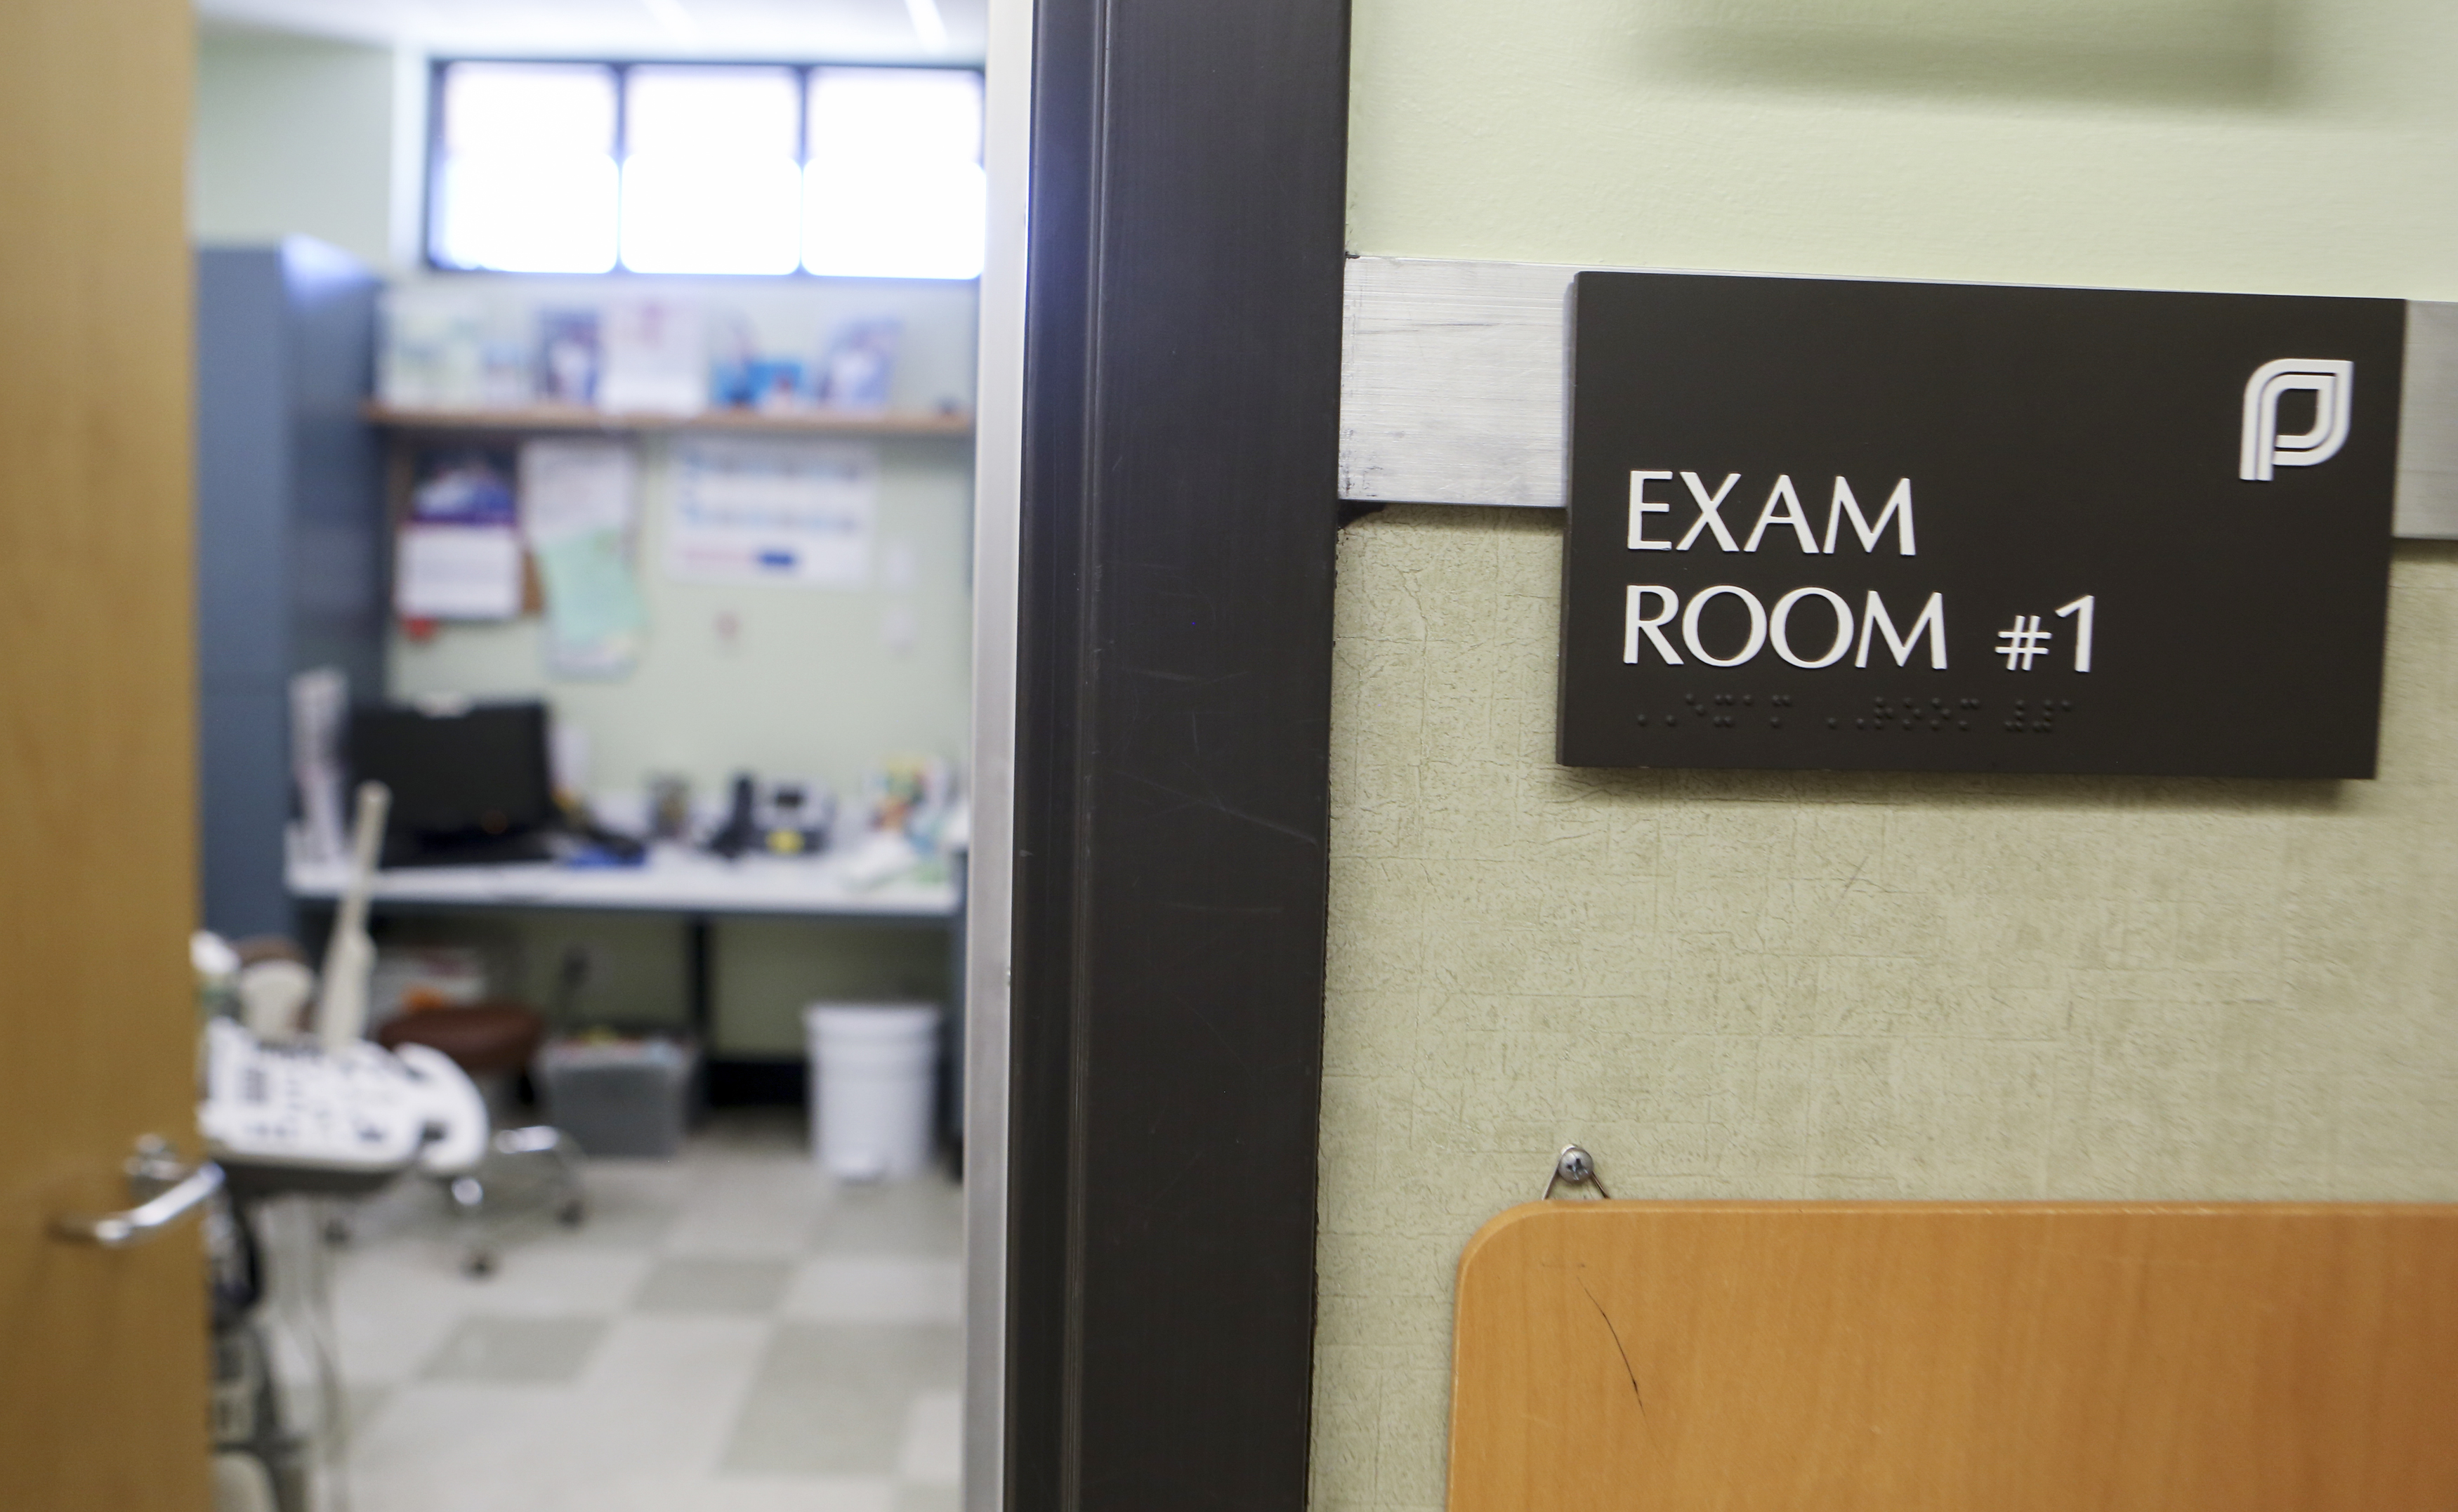 An exam room at the Planned Parenthood South Austin Health Center in Austin, Texas, U.S. June 27, 2016. REUTERS/Ilana Panich-Linsman